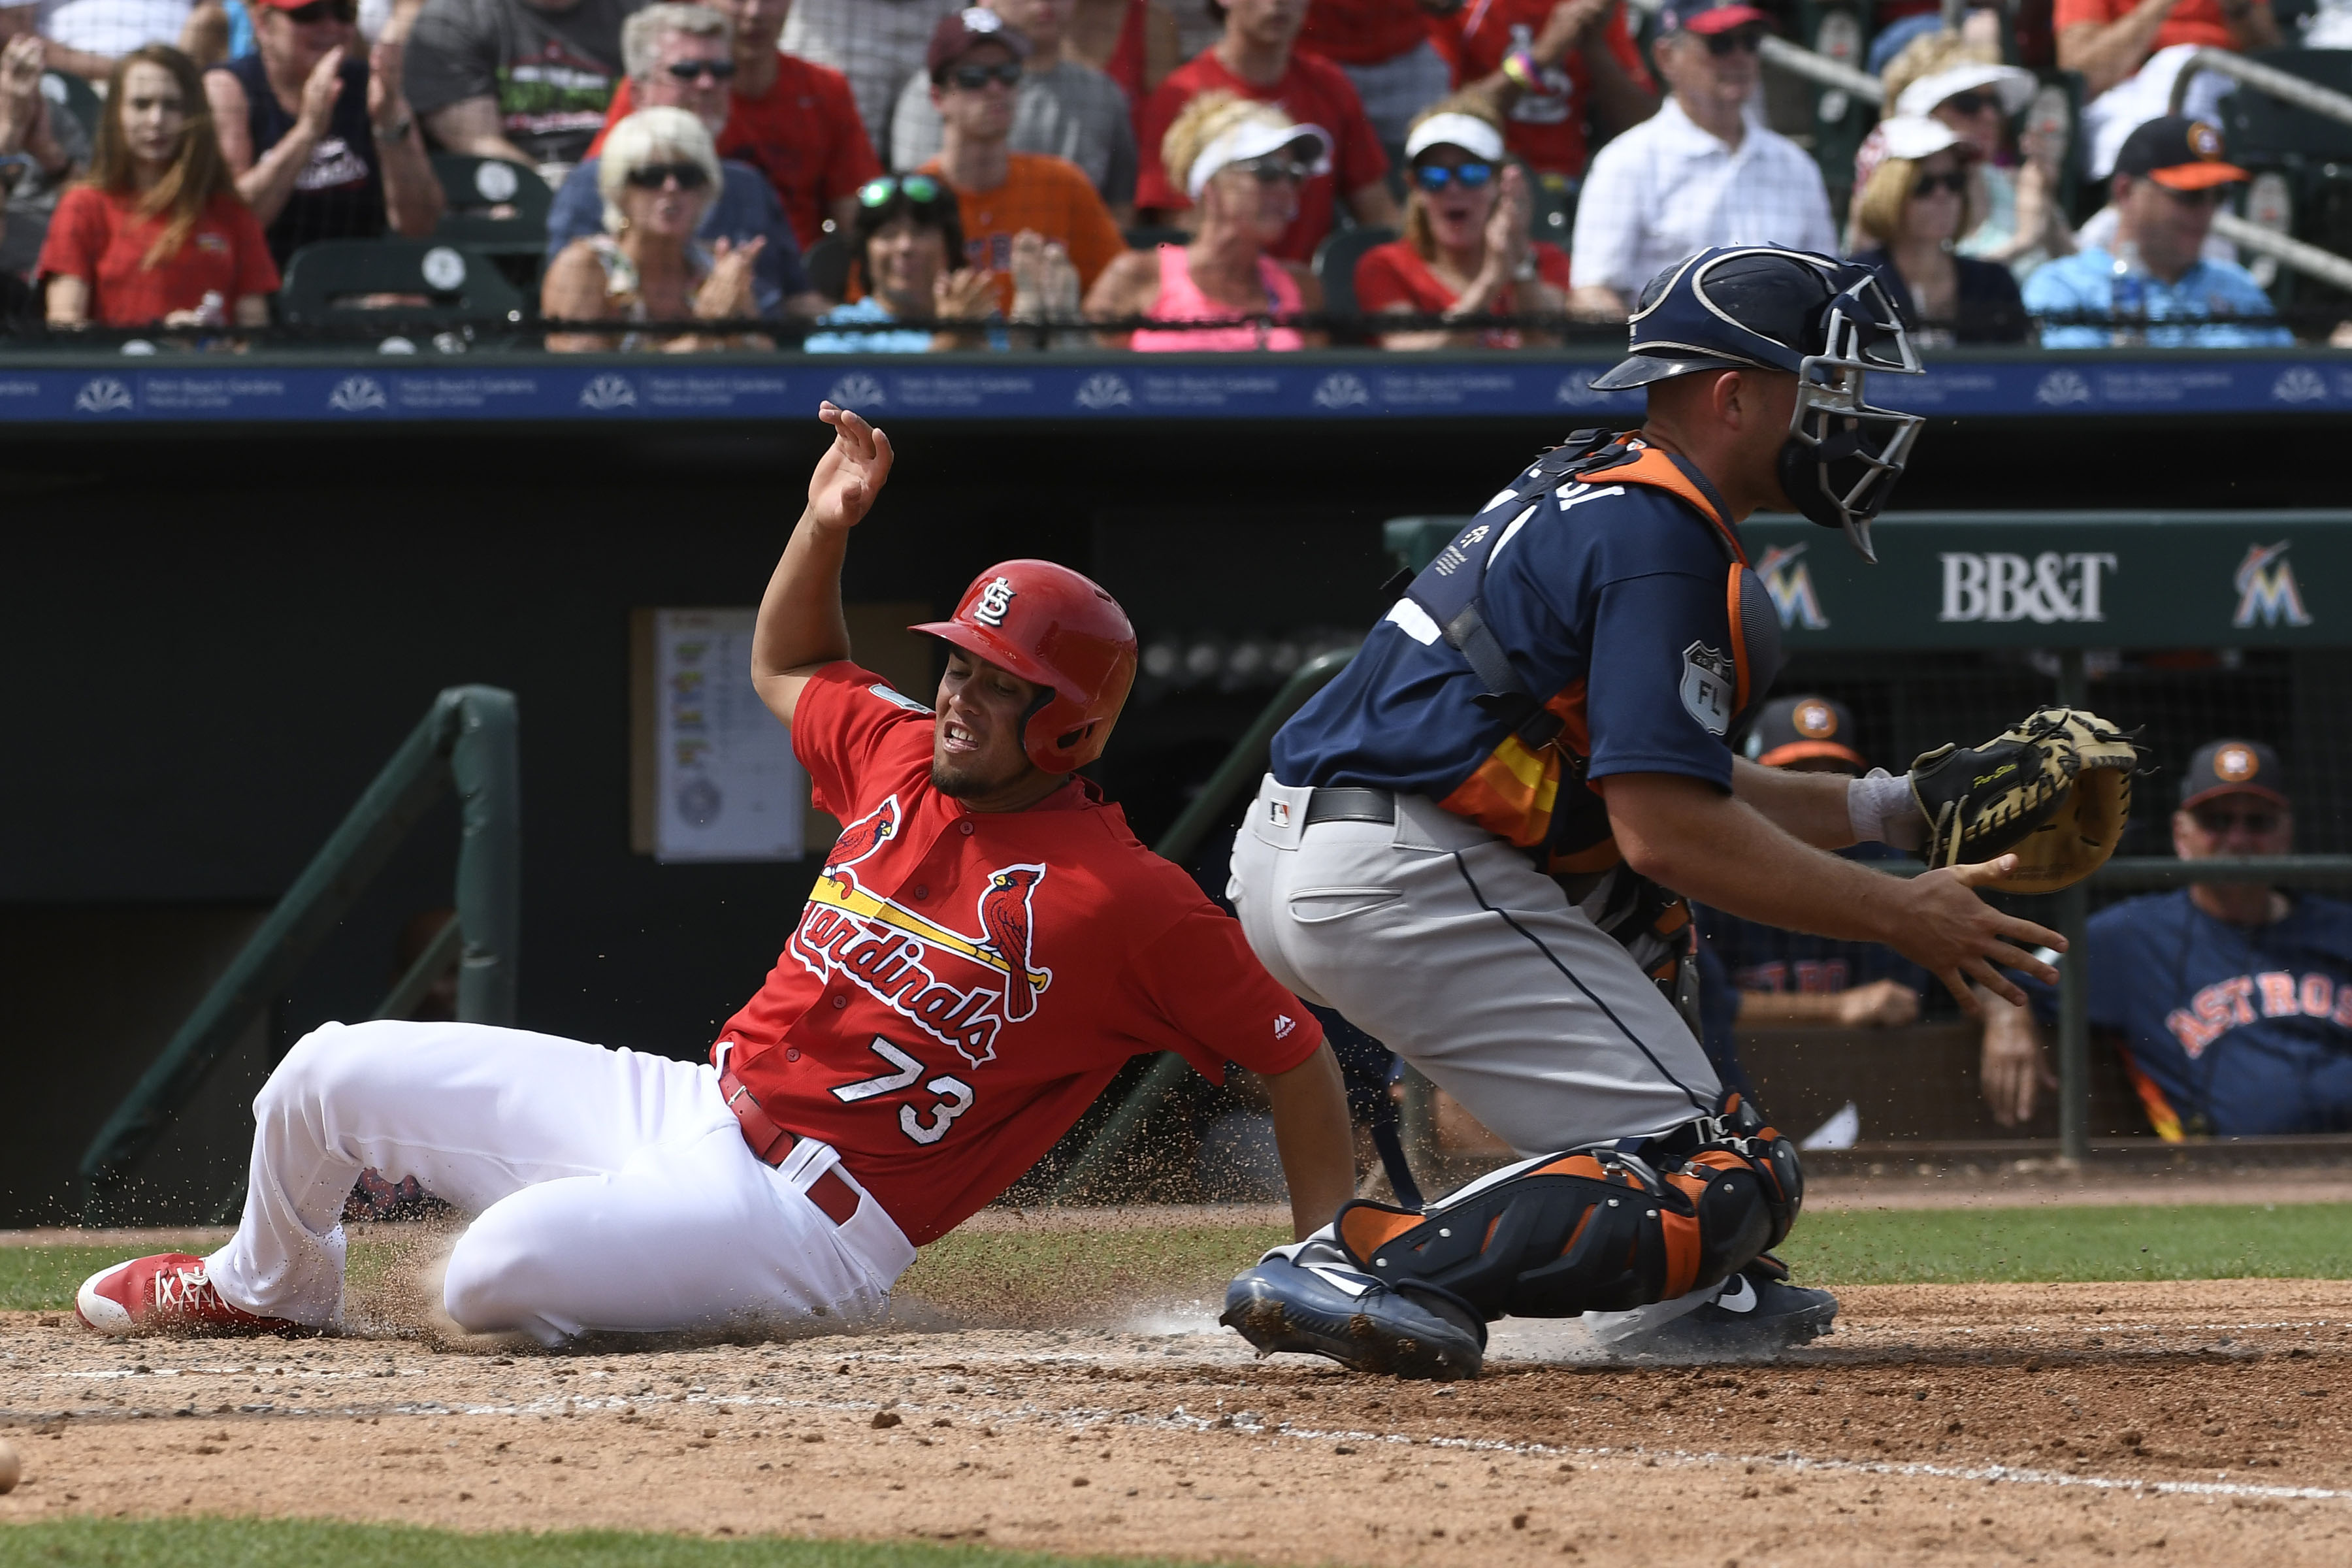 9940115-mlb-spring-training-houston-astros-at-st.-louis-cardinals